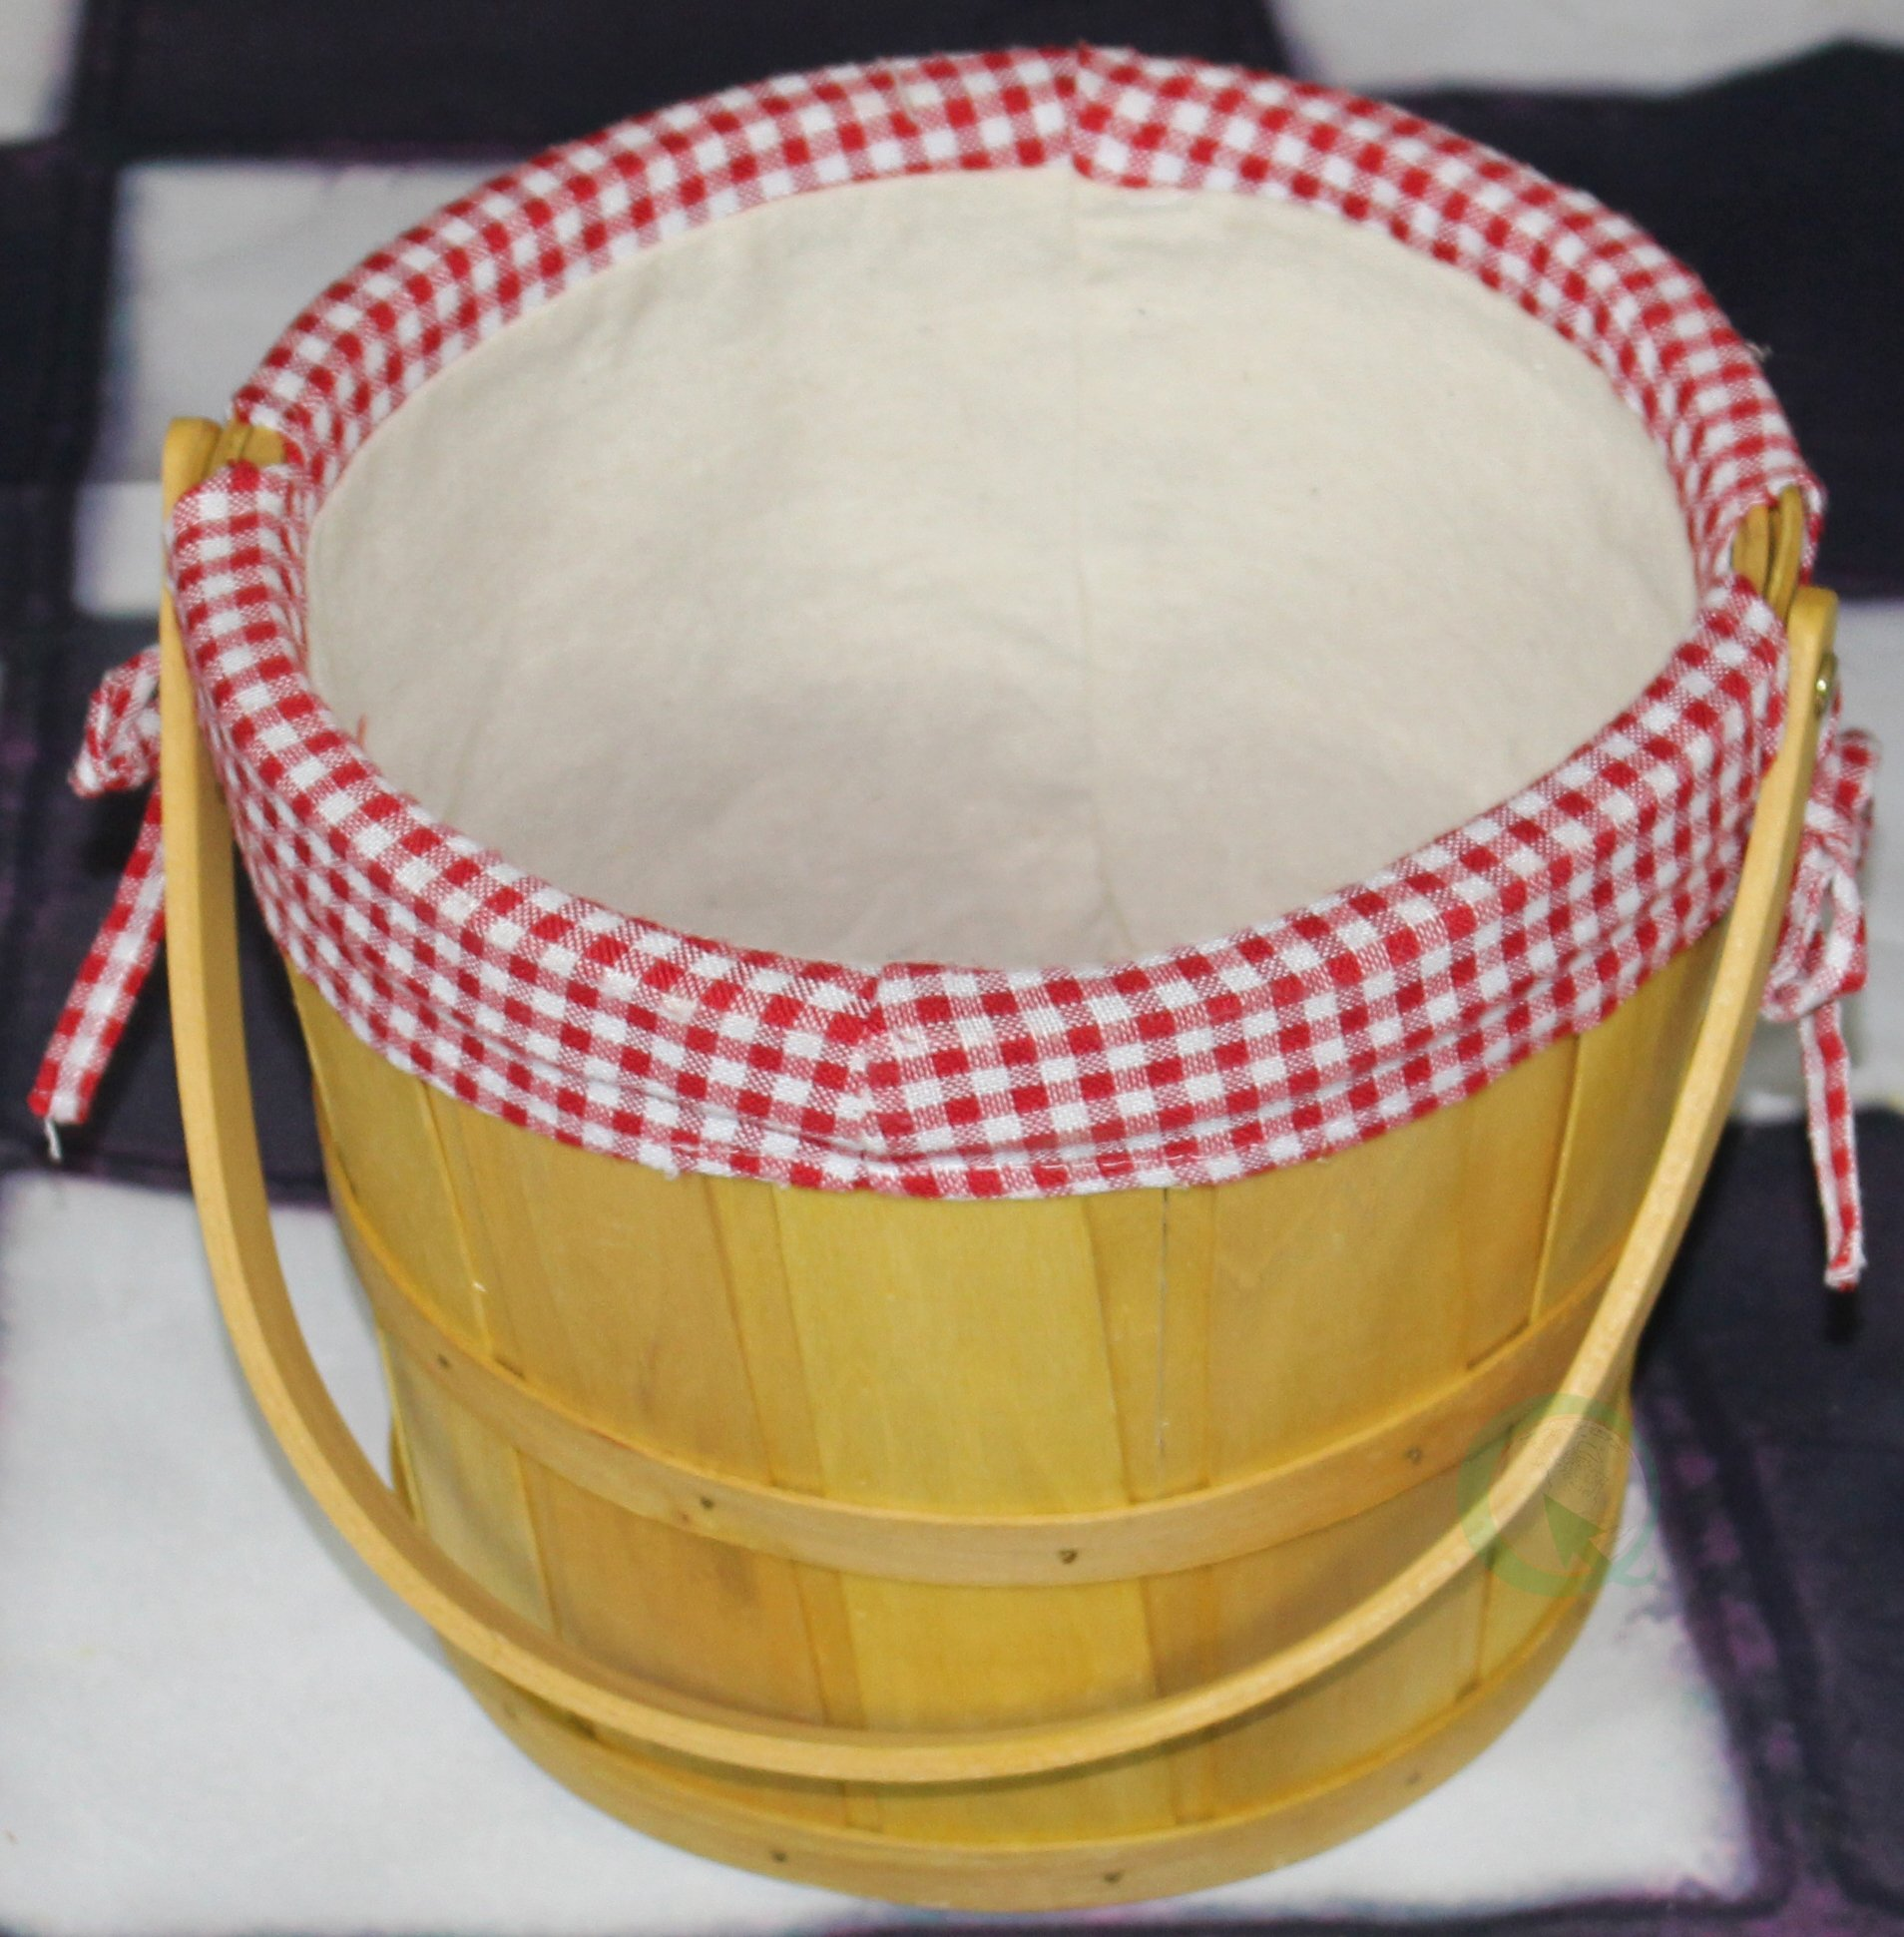 Vintiquewise(TM) Woodchip Bushel Basket with Red Ginghan Lining by Vintiquewise (Image #4)